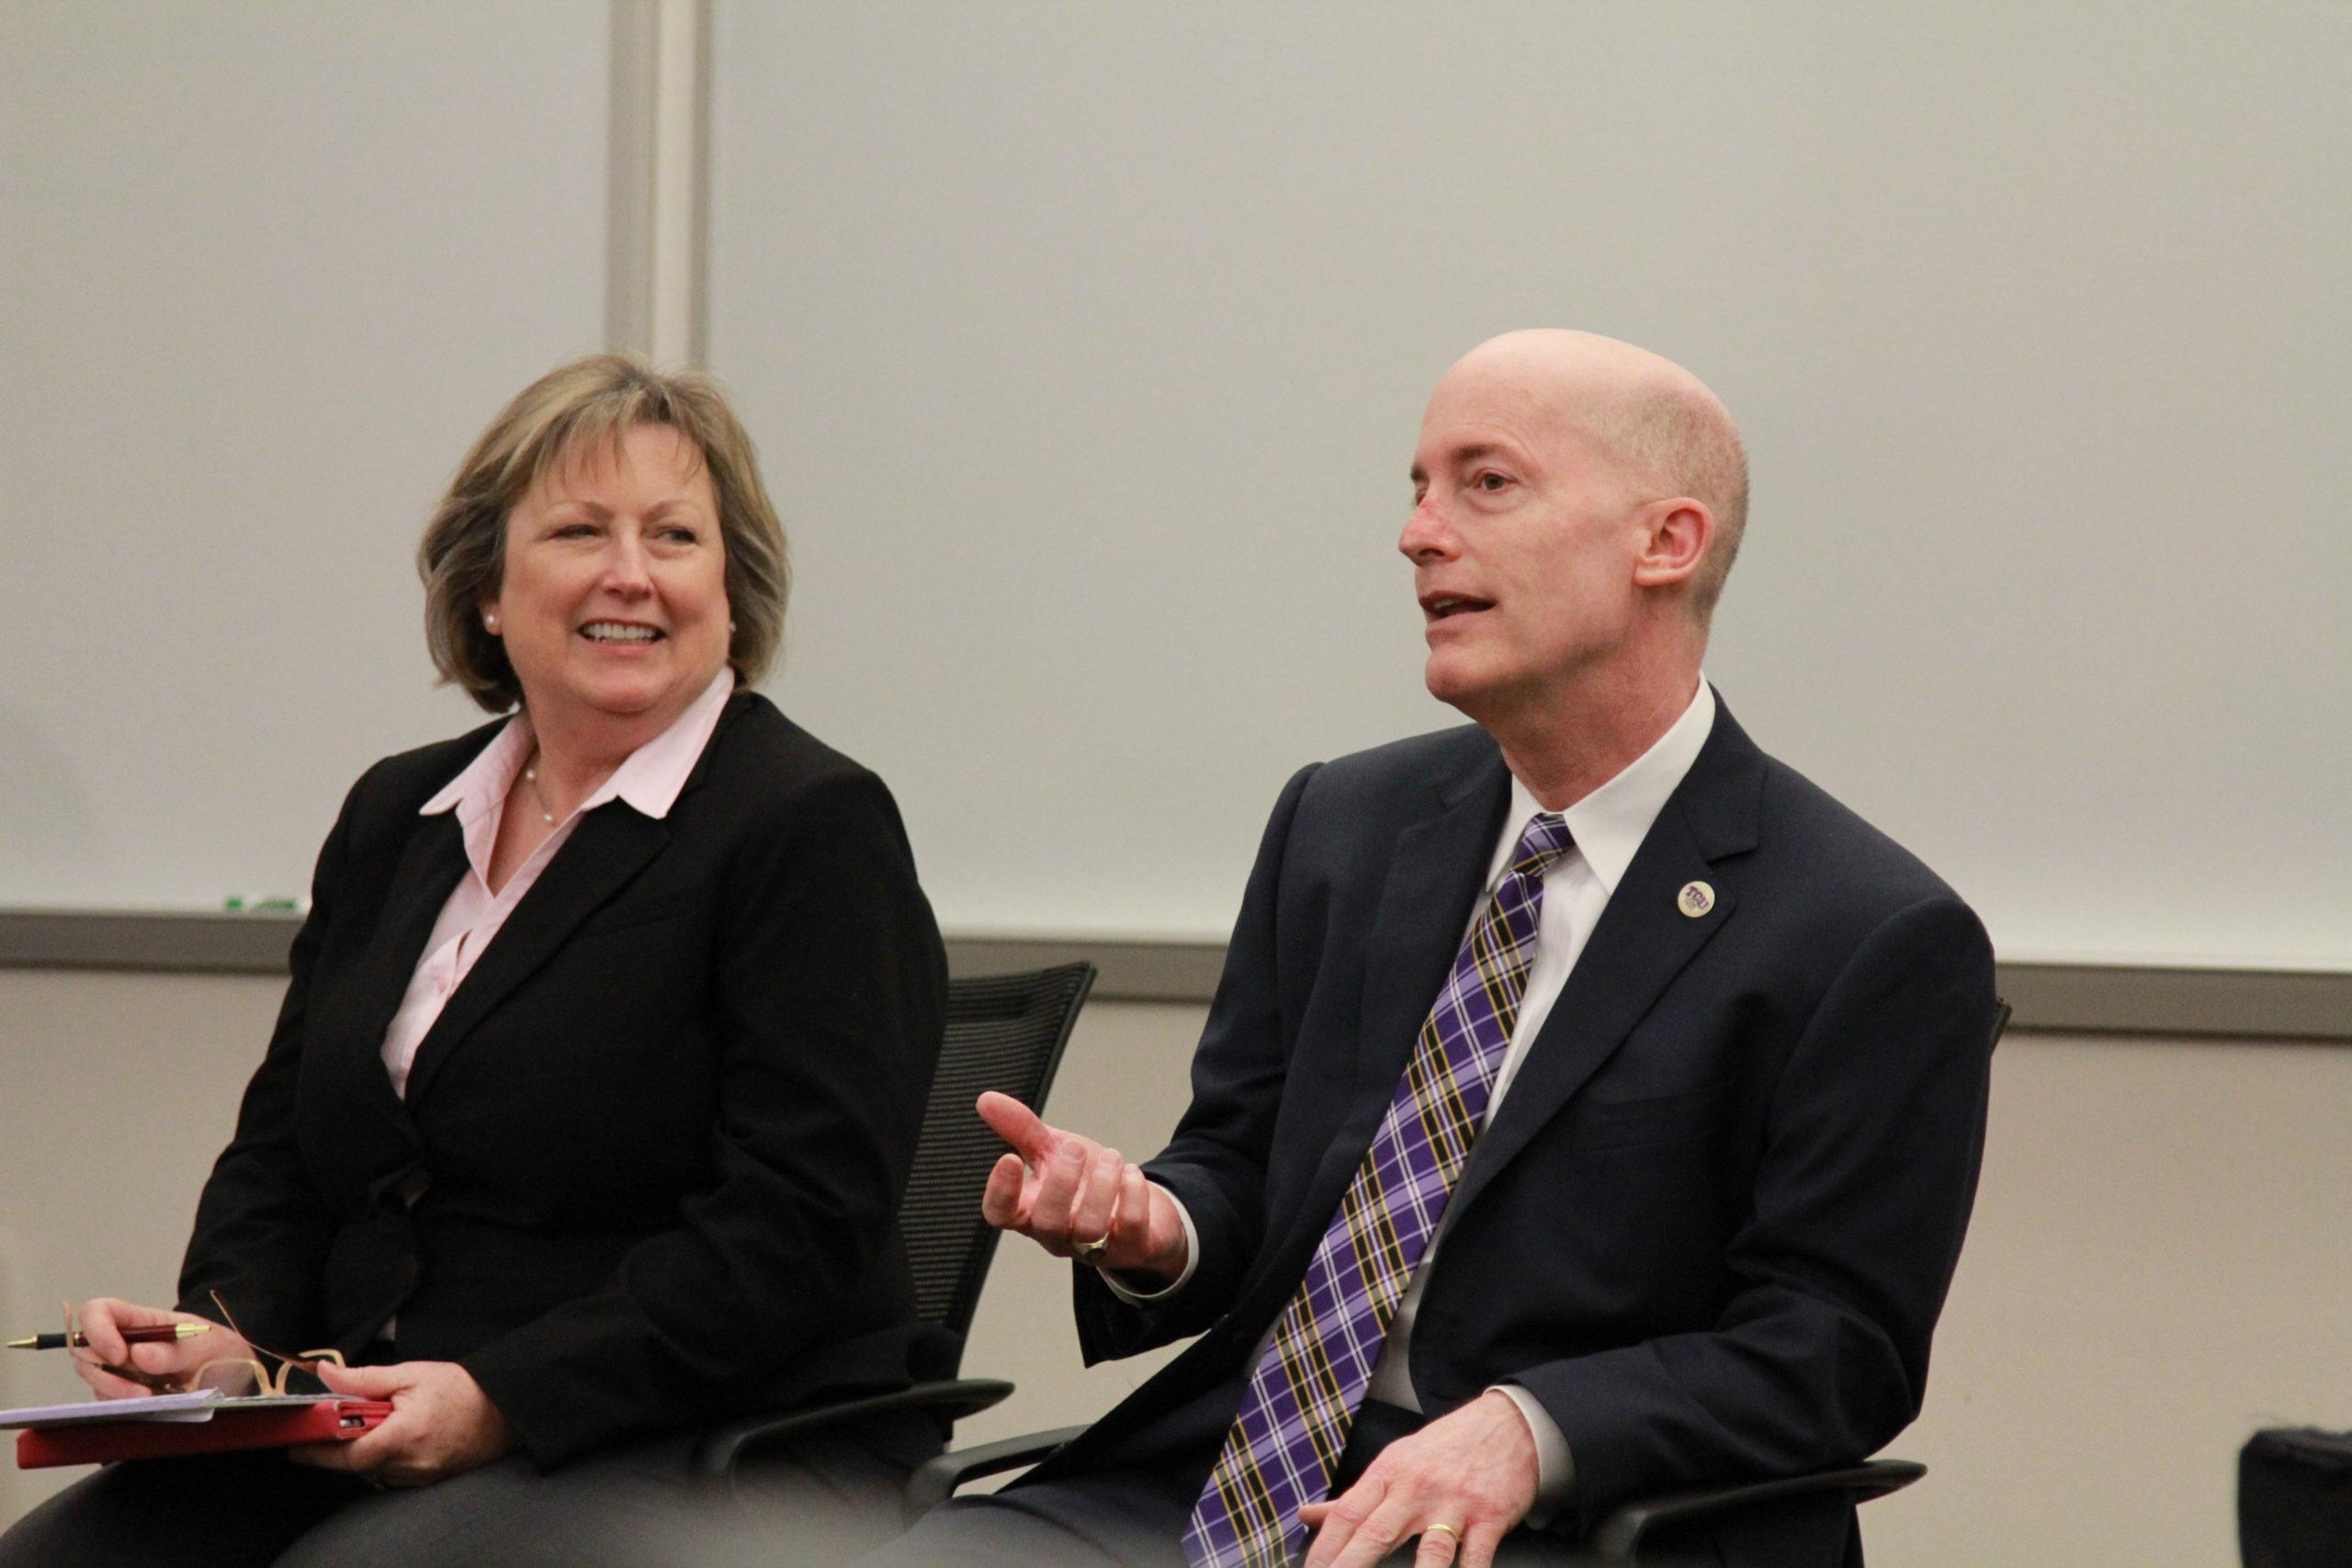 Chancellor Victor Boschini and Dean of Graduate Studies Bonnie Melhart announced that some graduate students can now have three quarters of their health insurance paid for by TCU.